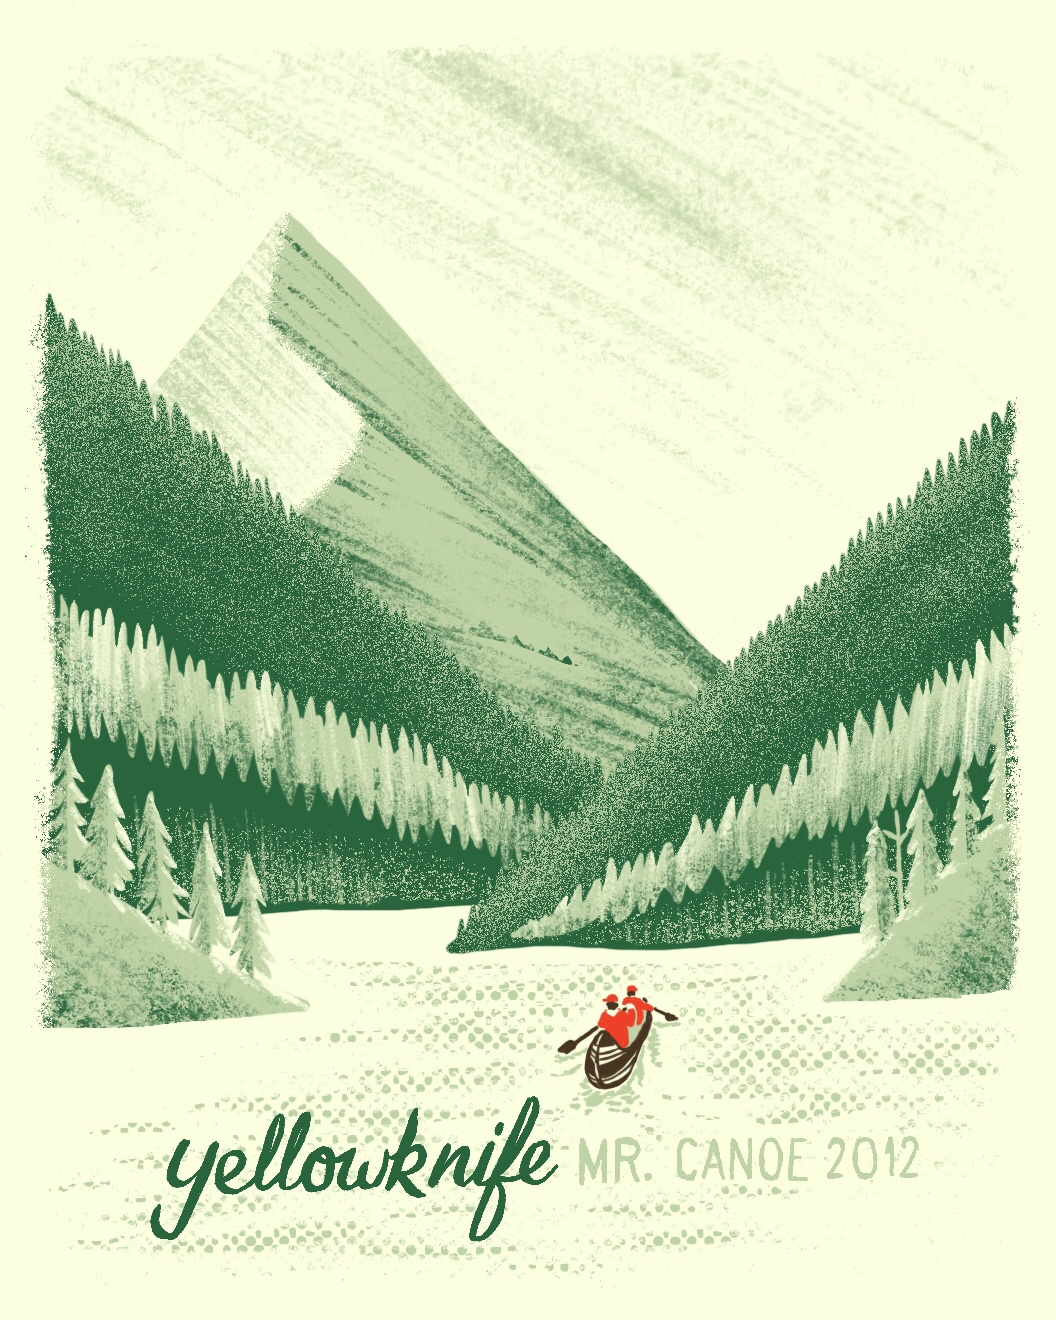 Yellowknife canoe trip illustration